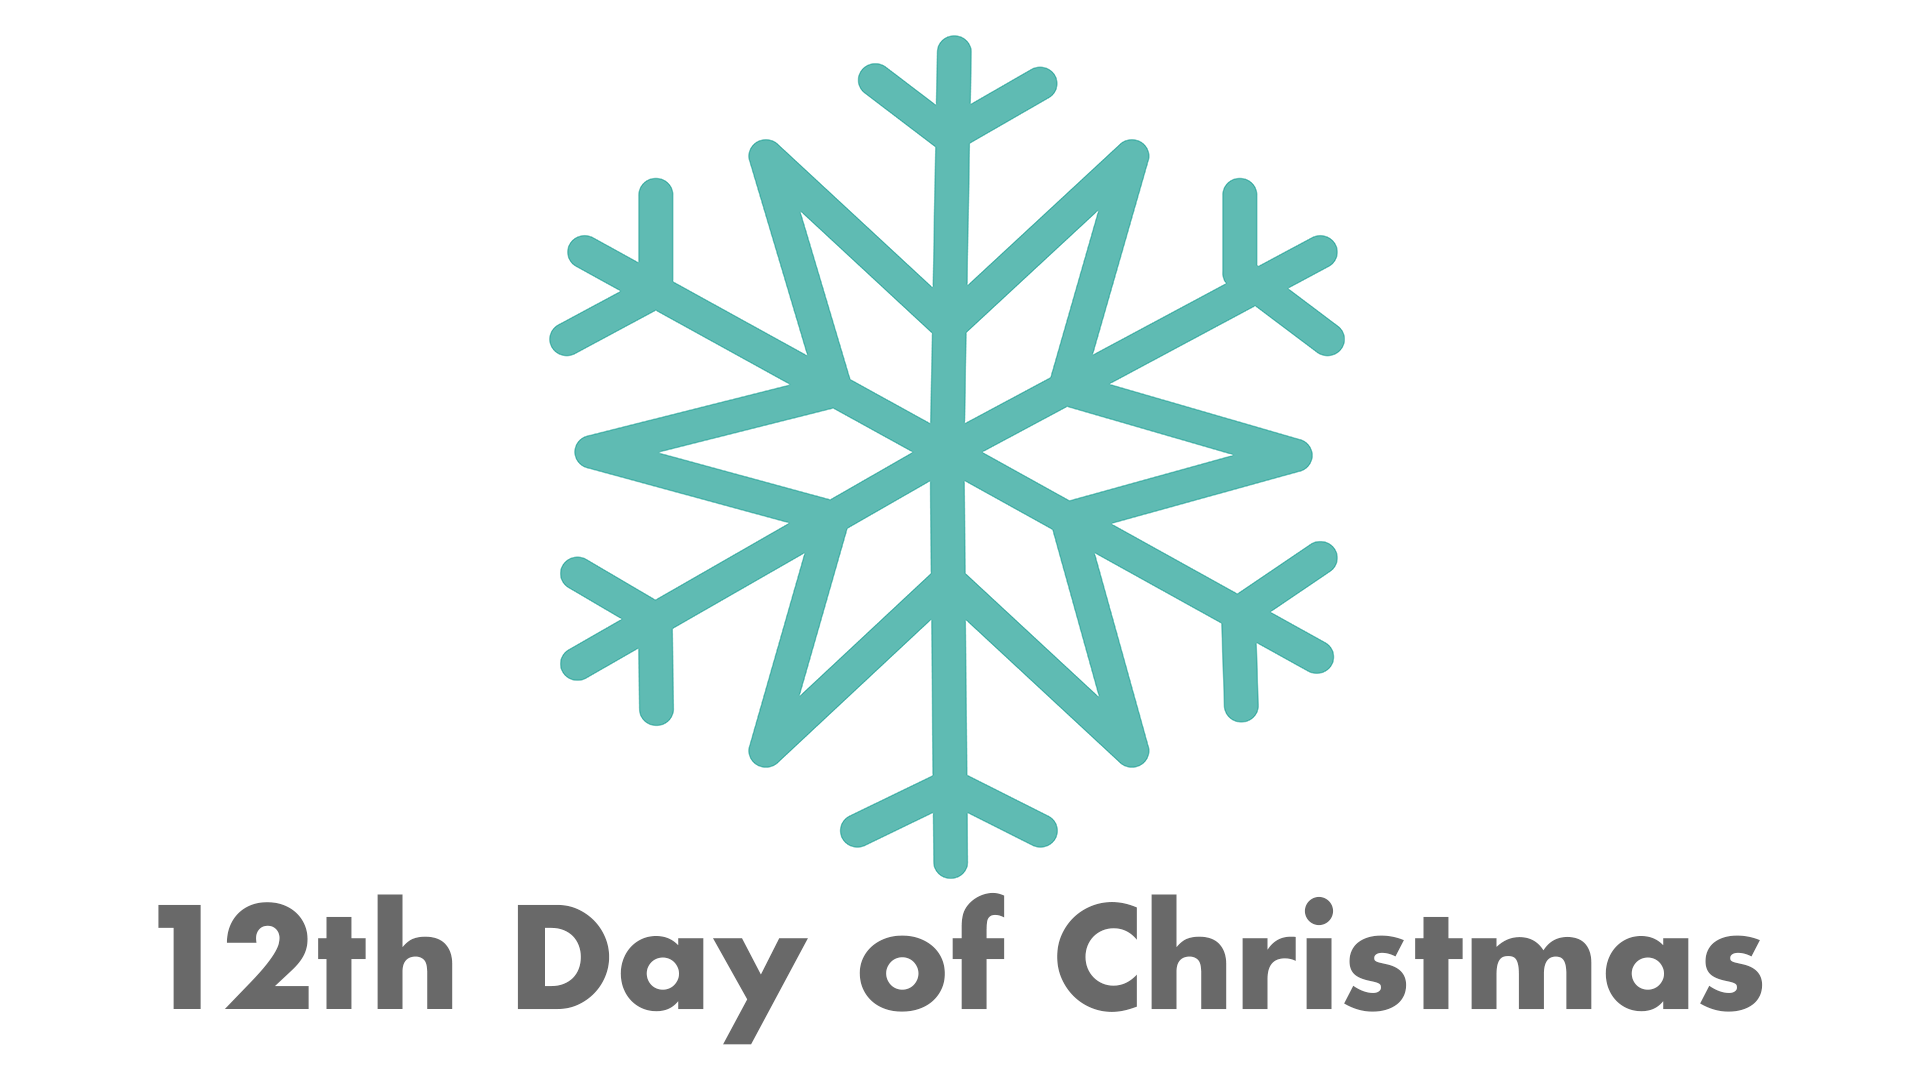 DAY 12 snowflake with text.png